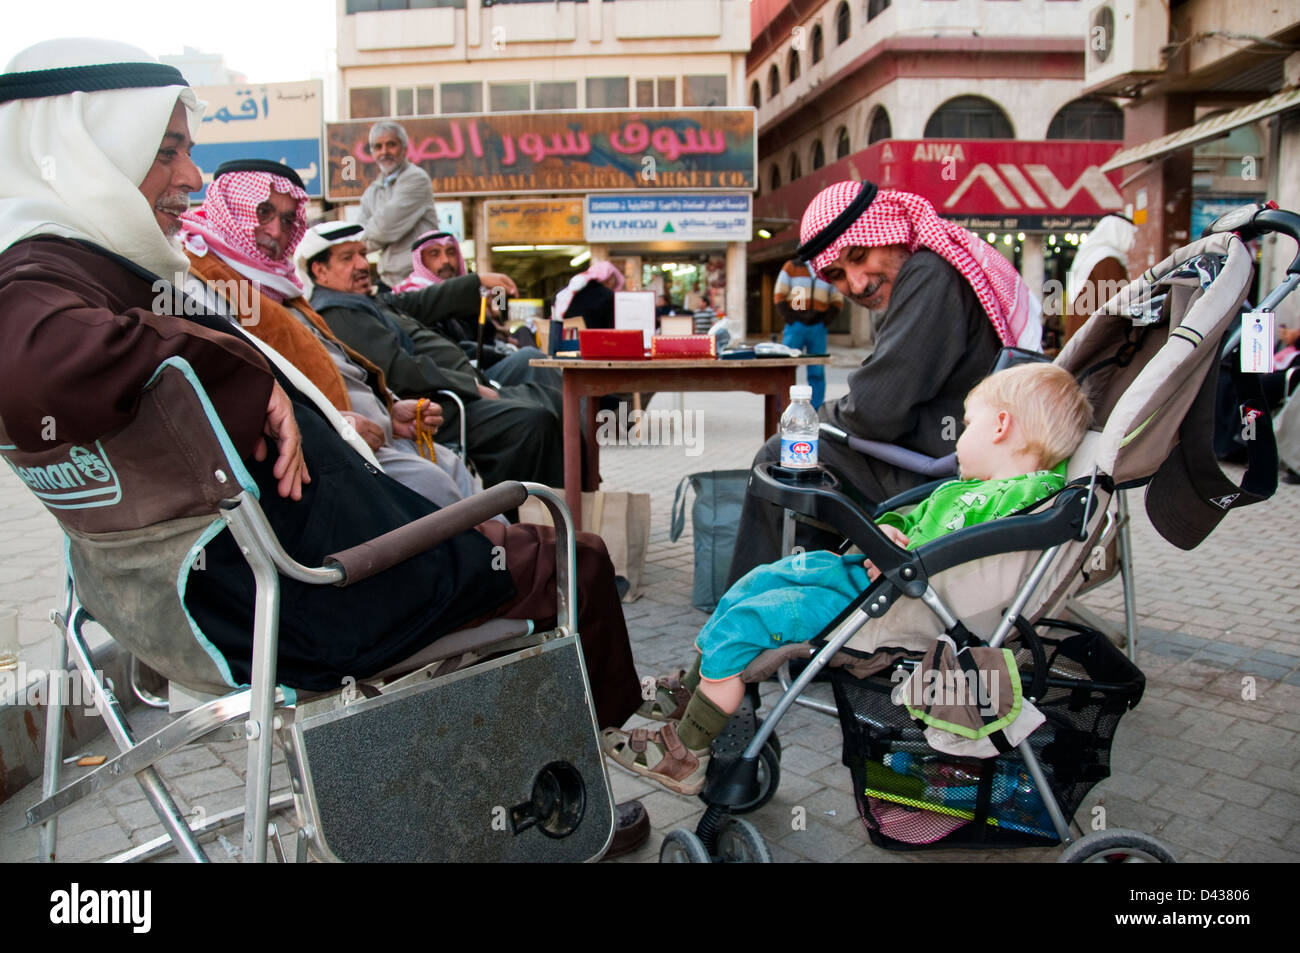 Young tourist boy asleep in stroller attracts many looks from friedly locals, Souk Al-Mubarak, Kuwait - Stock Image